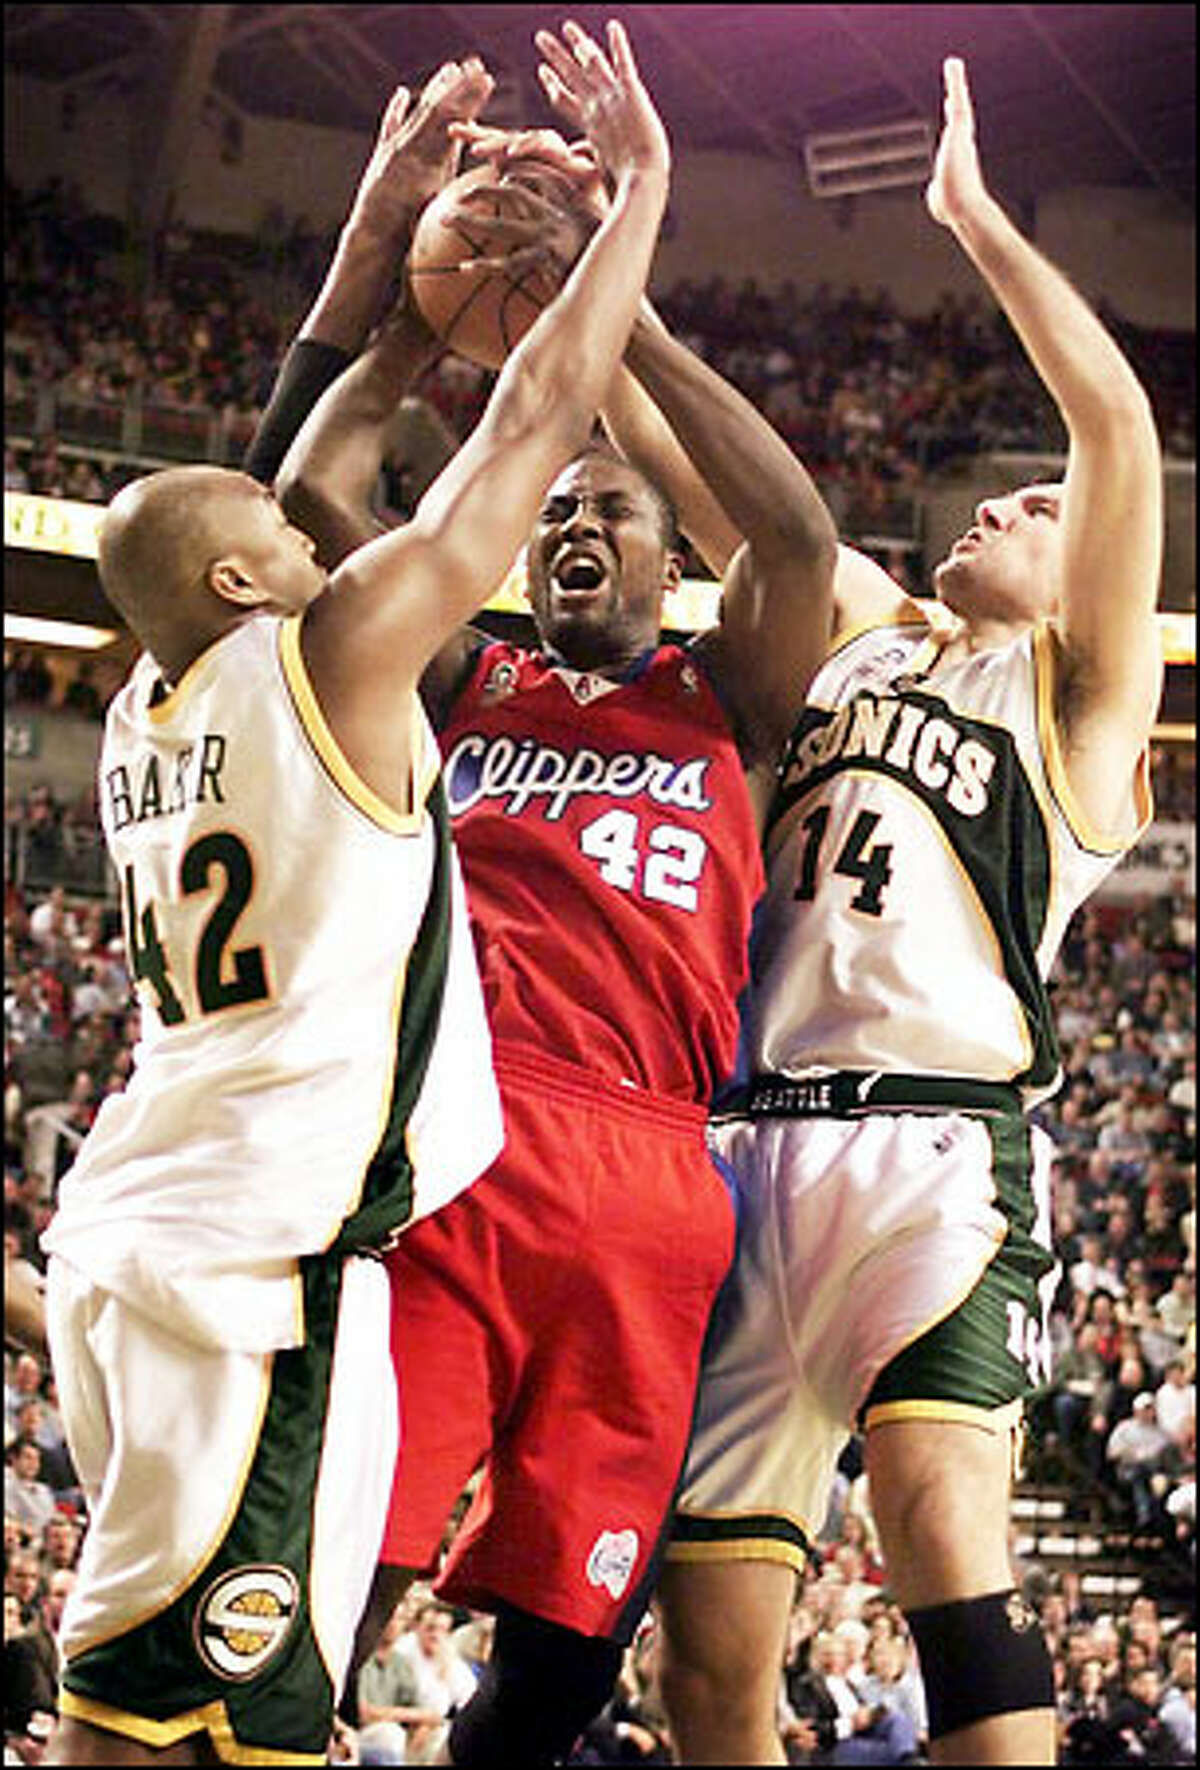 Clippers forward Elton Brand, double-teamed by Sonics defenders Vin Baker and Predrag Drobnjak, finds the paint a painful place.